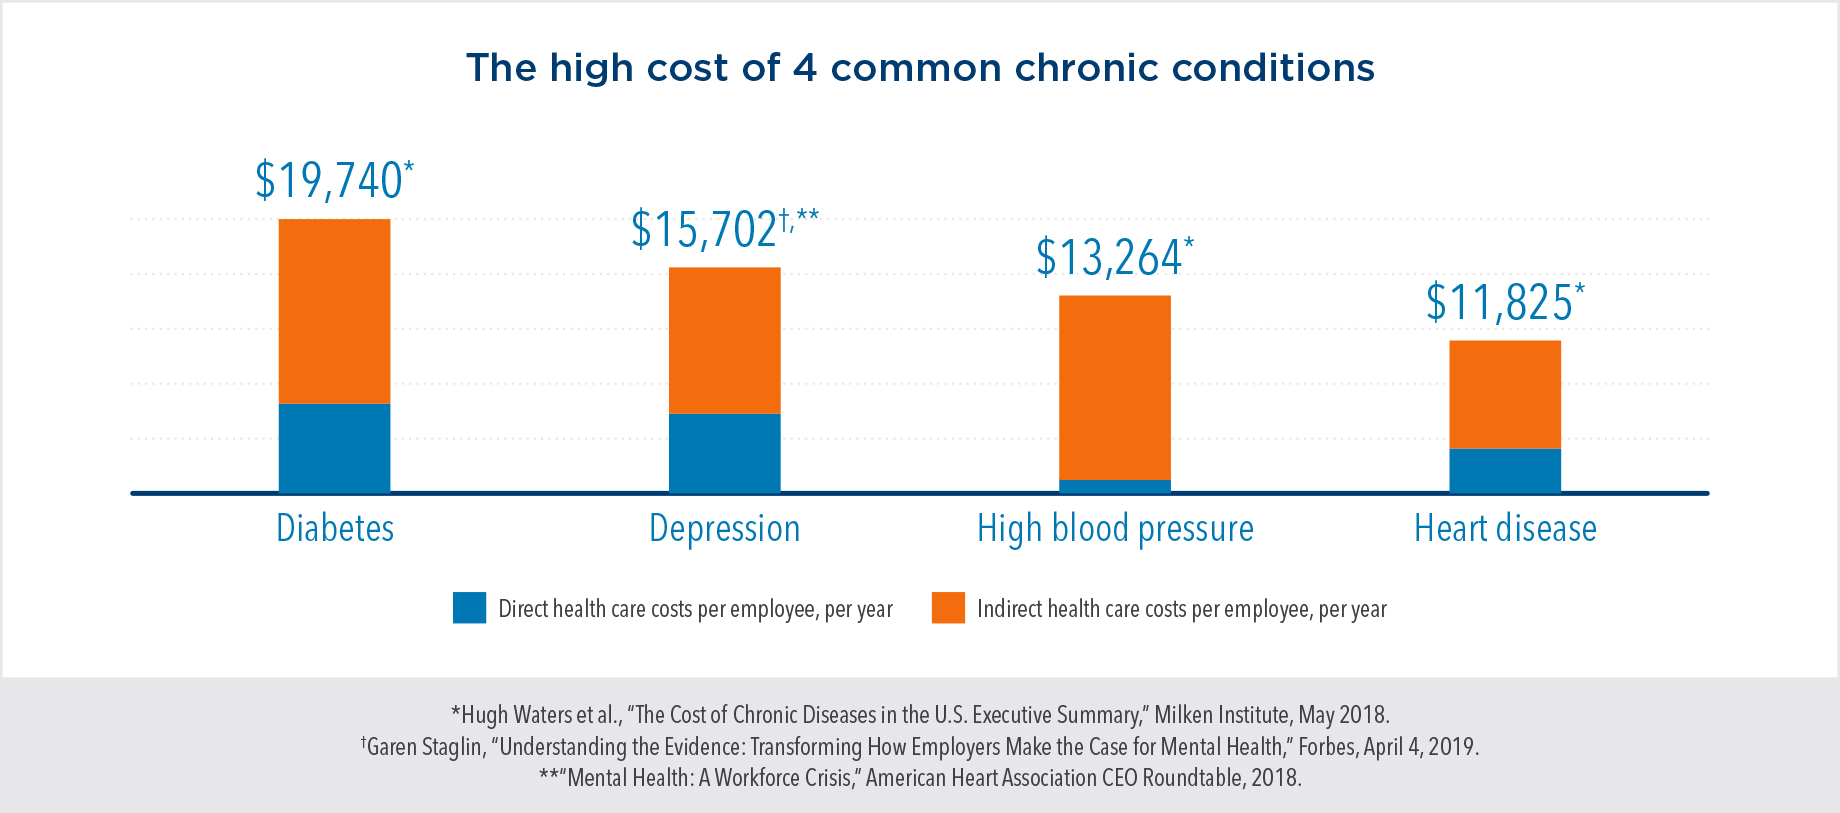 The high cost of 4 common chronic conditions. When combining direct and indirect health care costs per employee, per year, diabetes costs $19,740; depression costs $15,702; high blood pressure costs $13,264; and heart disease costs $11,825.